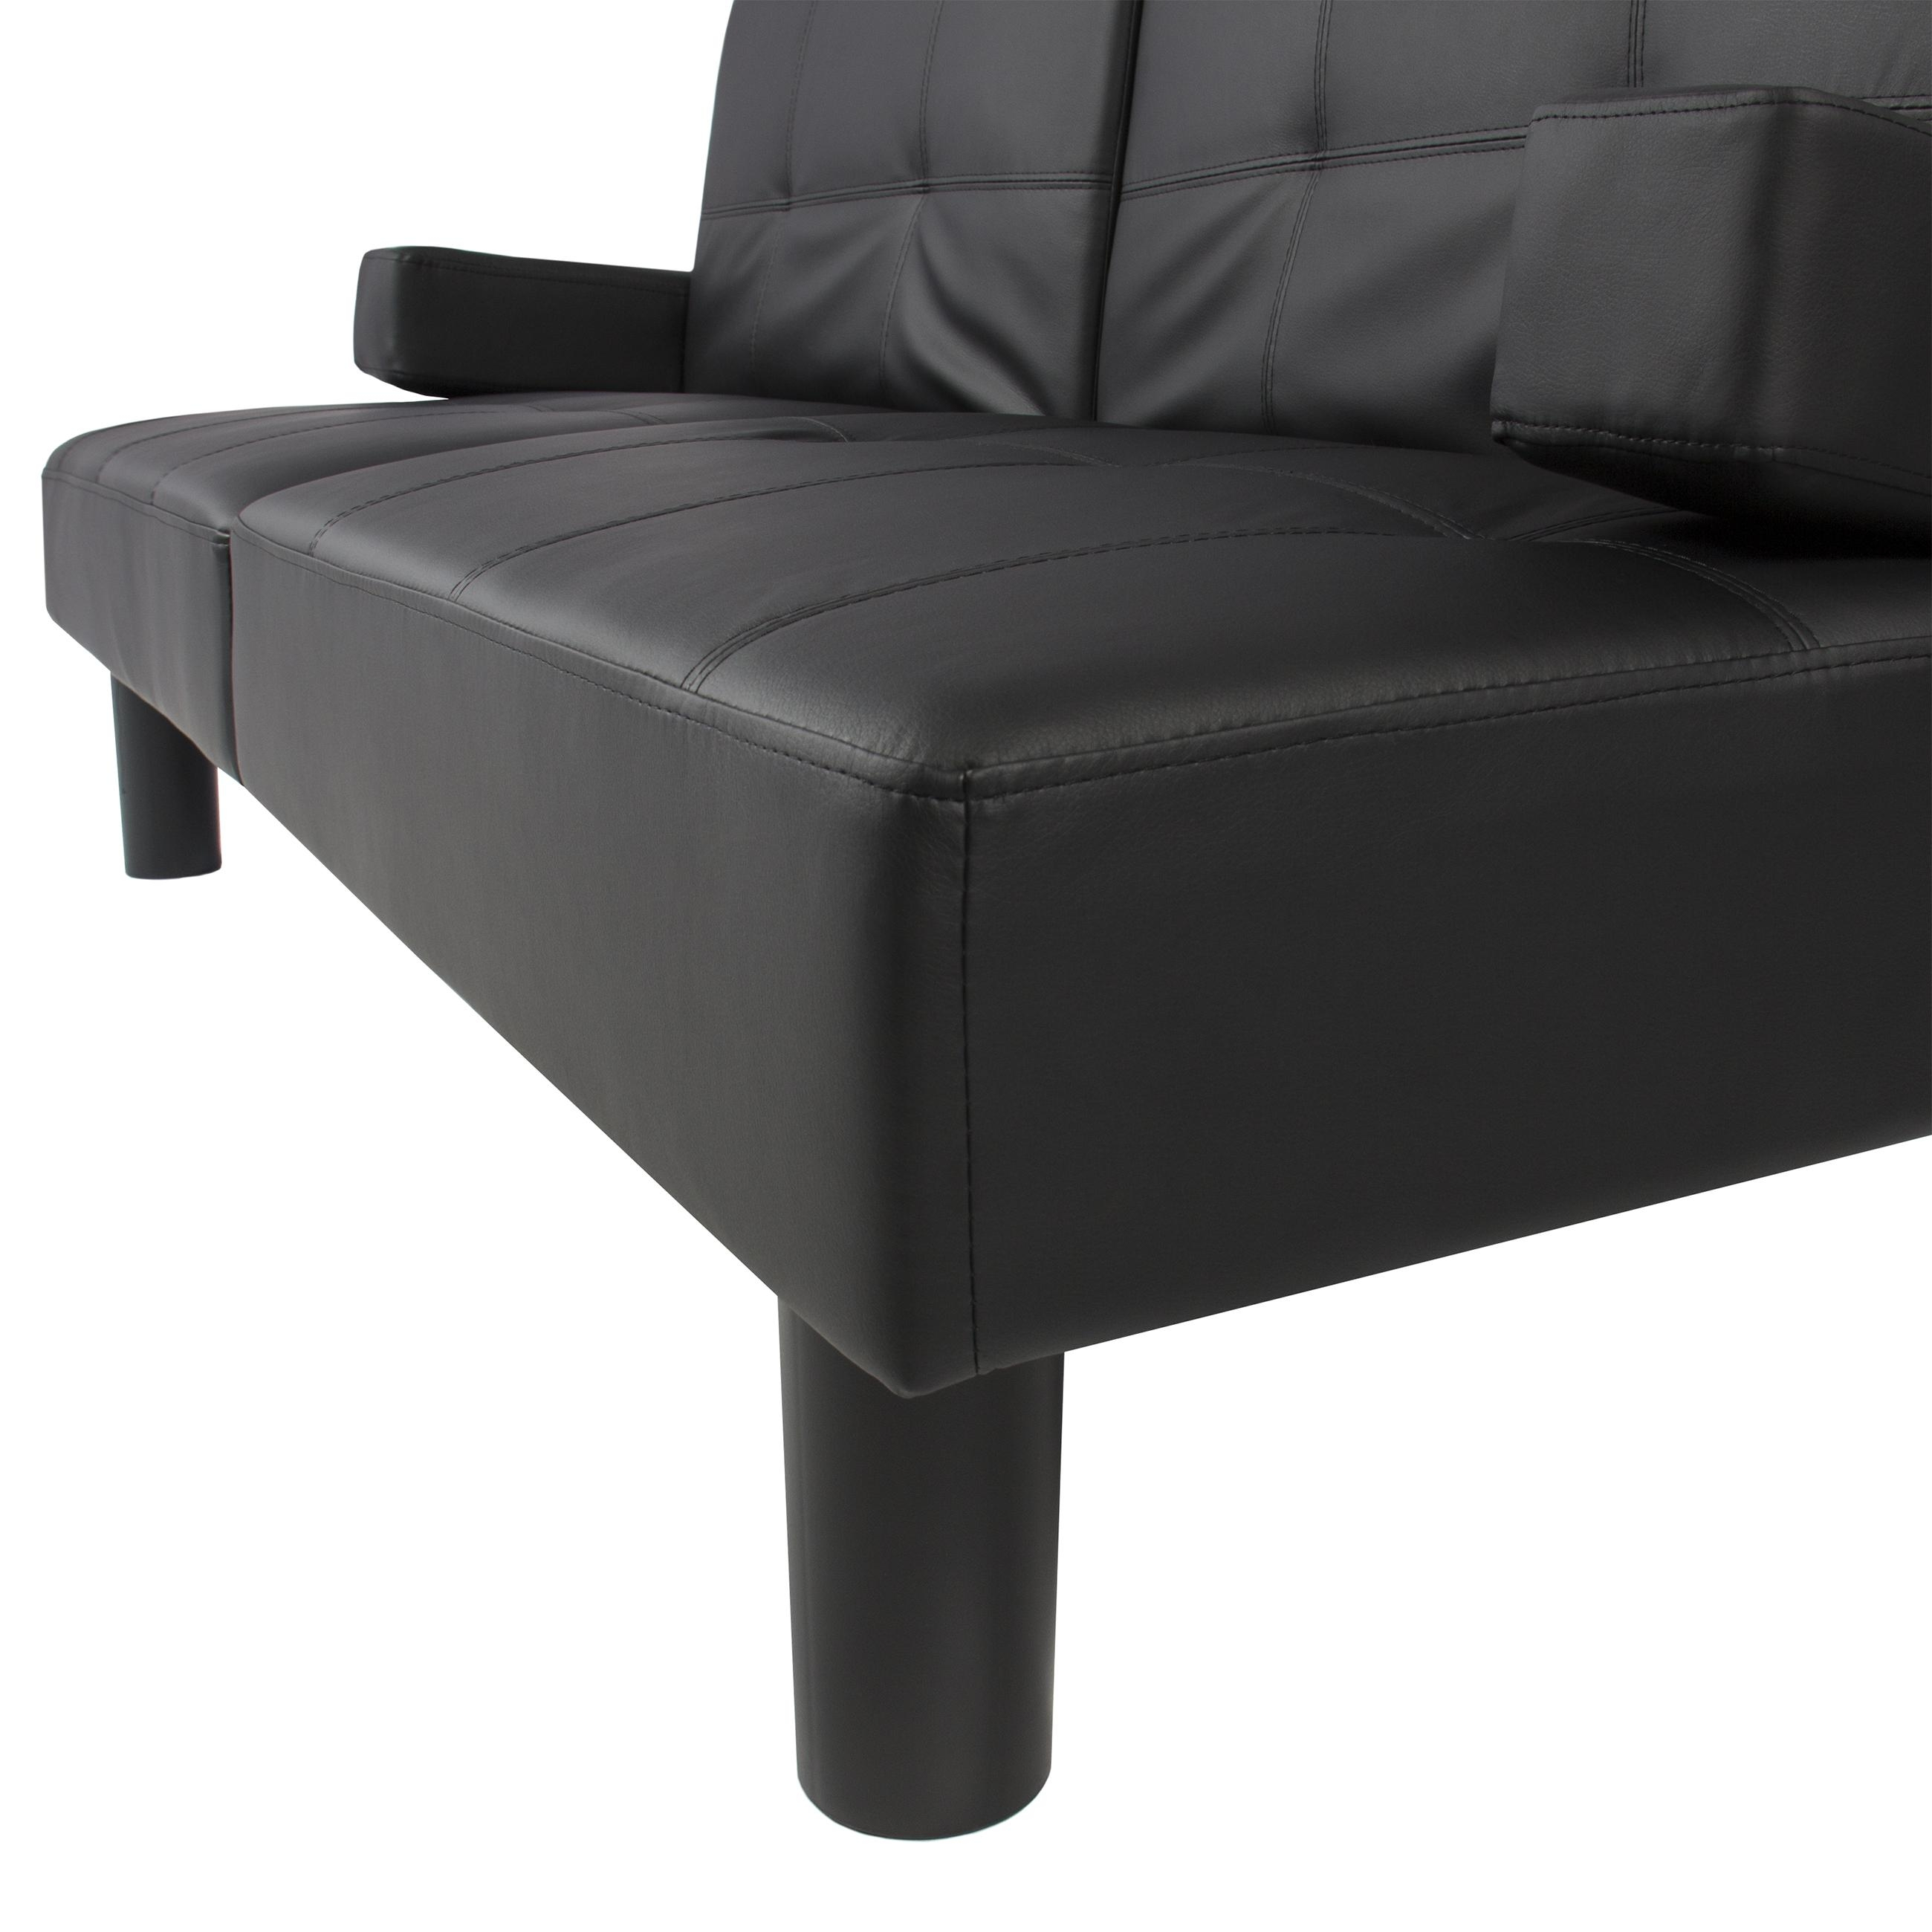 Leather Faux Fold Down Futon Sofa Bed Couch Sleeper Furniture Throughout Faux Leather Futon Sofas (Image 10 of 20)